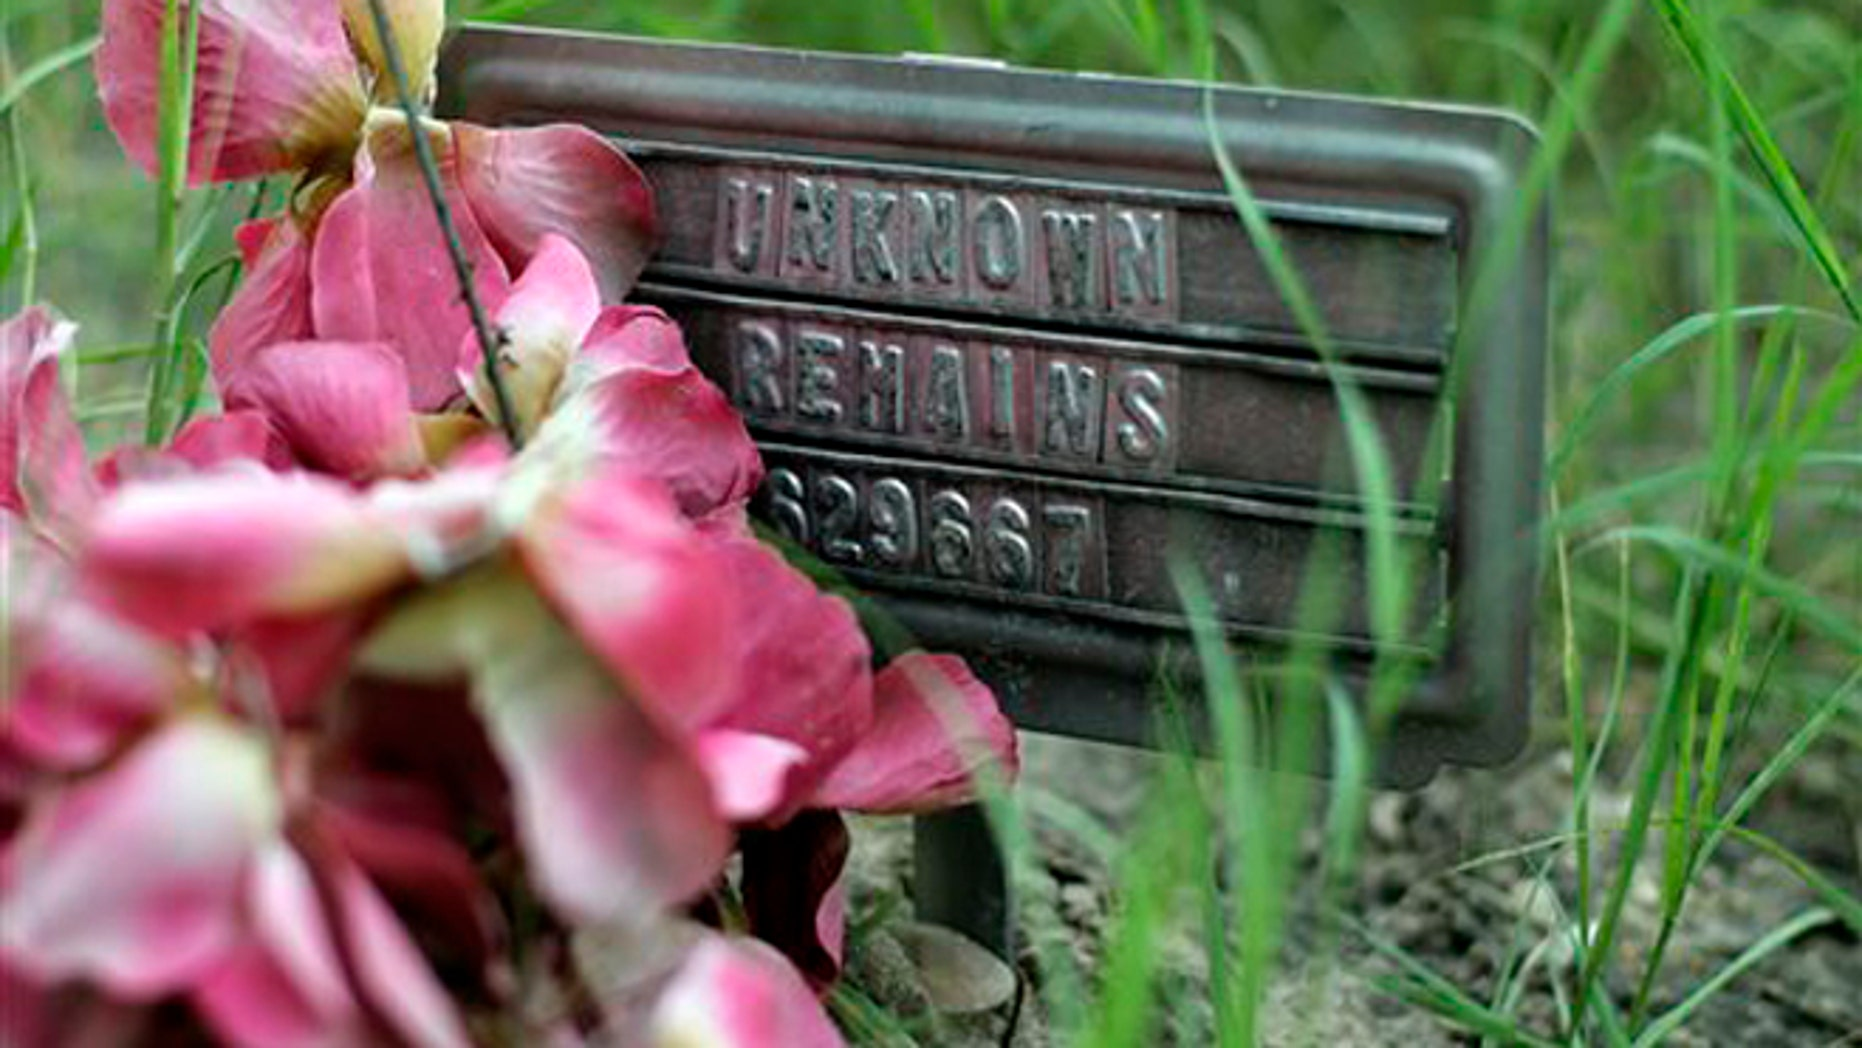 In this Aug. 23, 2013, photo, a small sign at a cemetery marks the grave site of an unidentified body found on a ranch, in Falfurrias, Texas. Brooks County, home to a Border Patrol checkpoint about an hour north of the border, handled 129 bodies last year of immigrants that died in their attempt to come to the U.S. Brooks County is now trying to improve its services by performing an autopsy on all immigrants and making greater efforts to identify them. (AP Photo/Eric Gay)